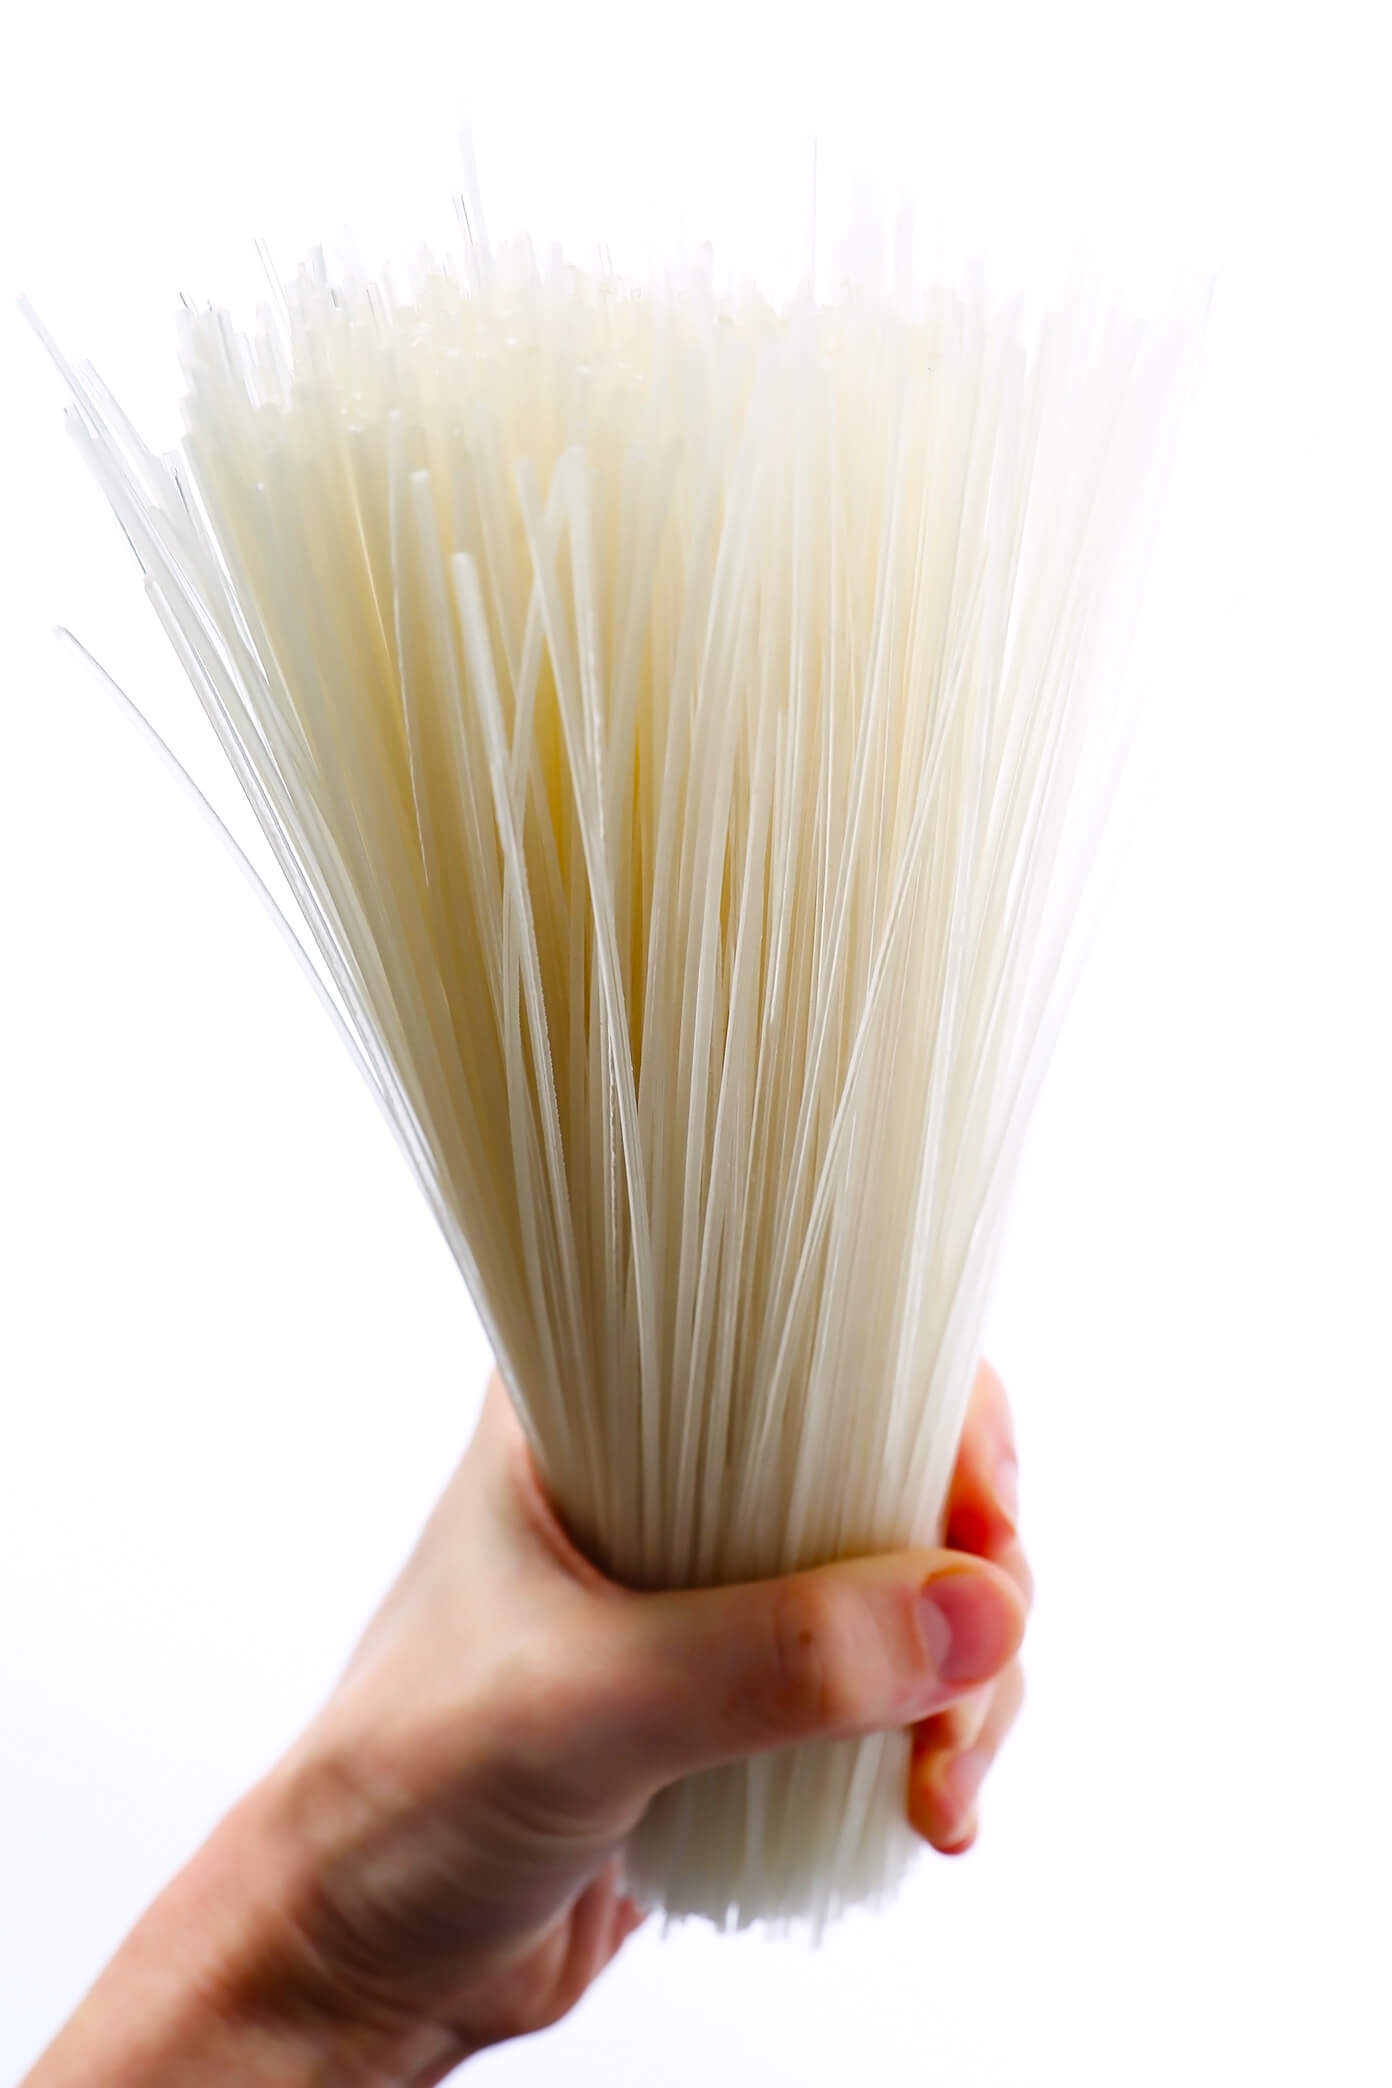 Dangmyeon (sweet potato starch noodles or glass noodles)